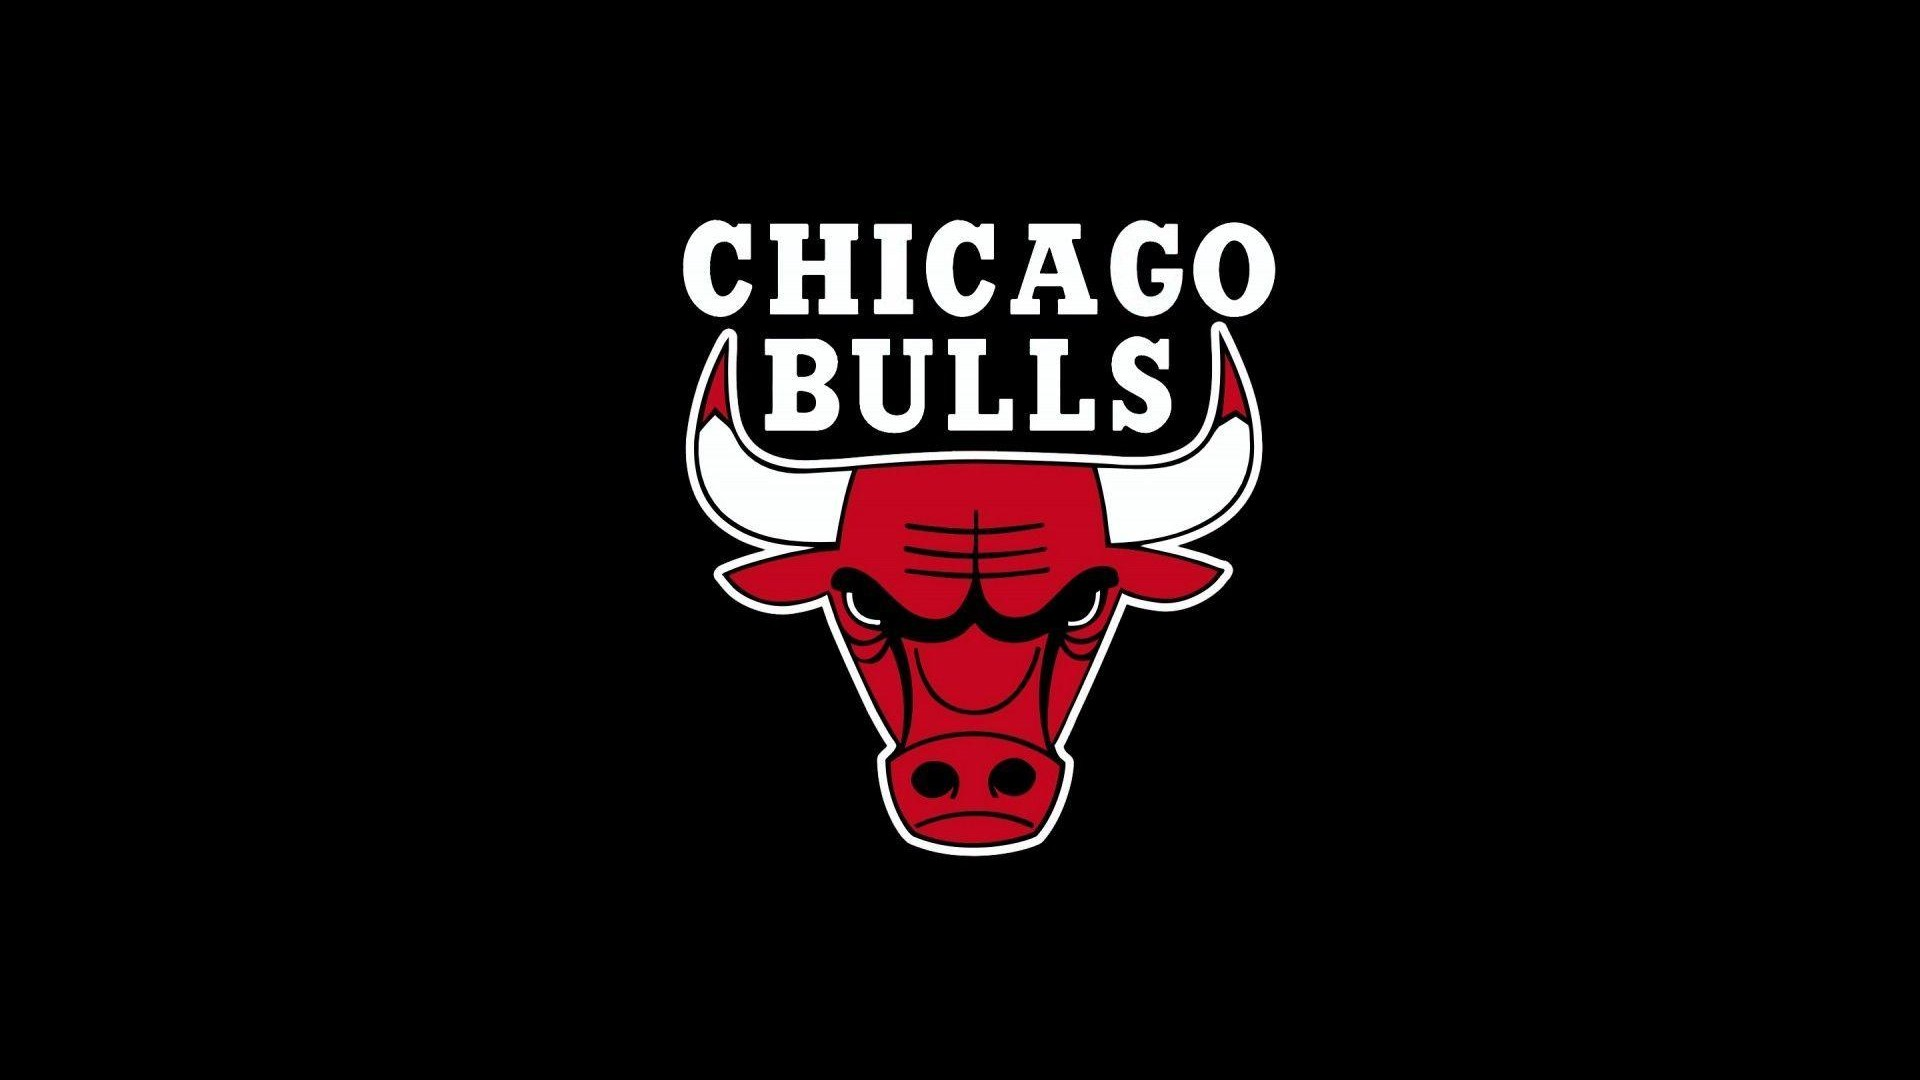 1920x1080 - Chicago Bulls HD 27